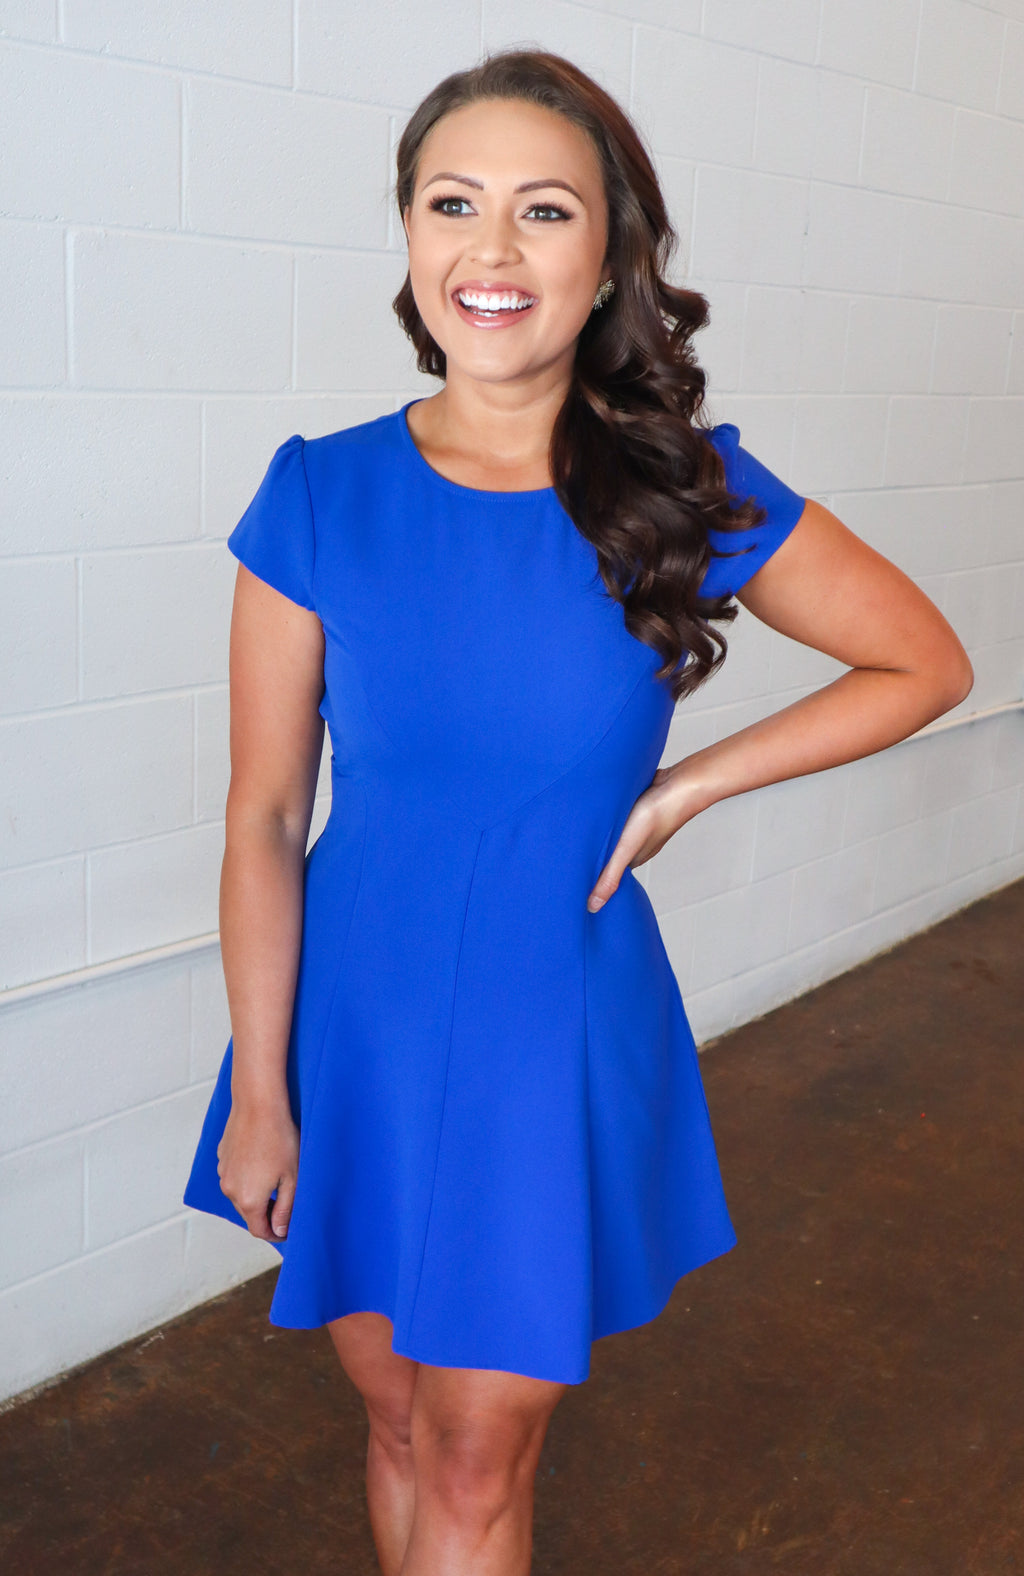 Meet and Greet Blue Skater Dress